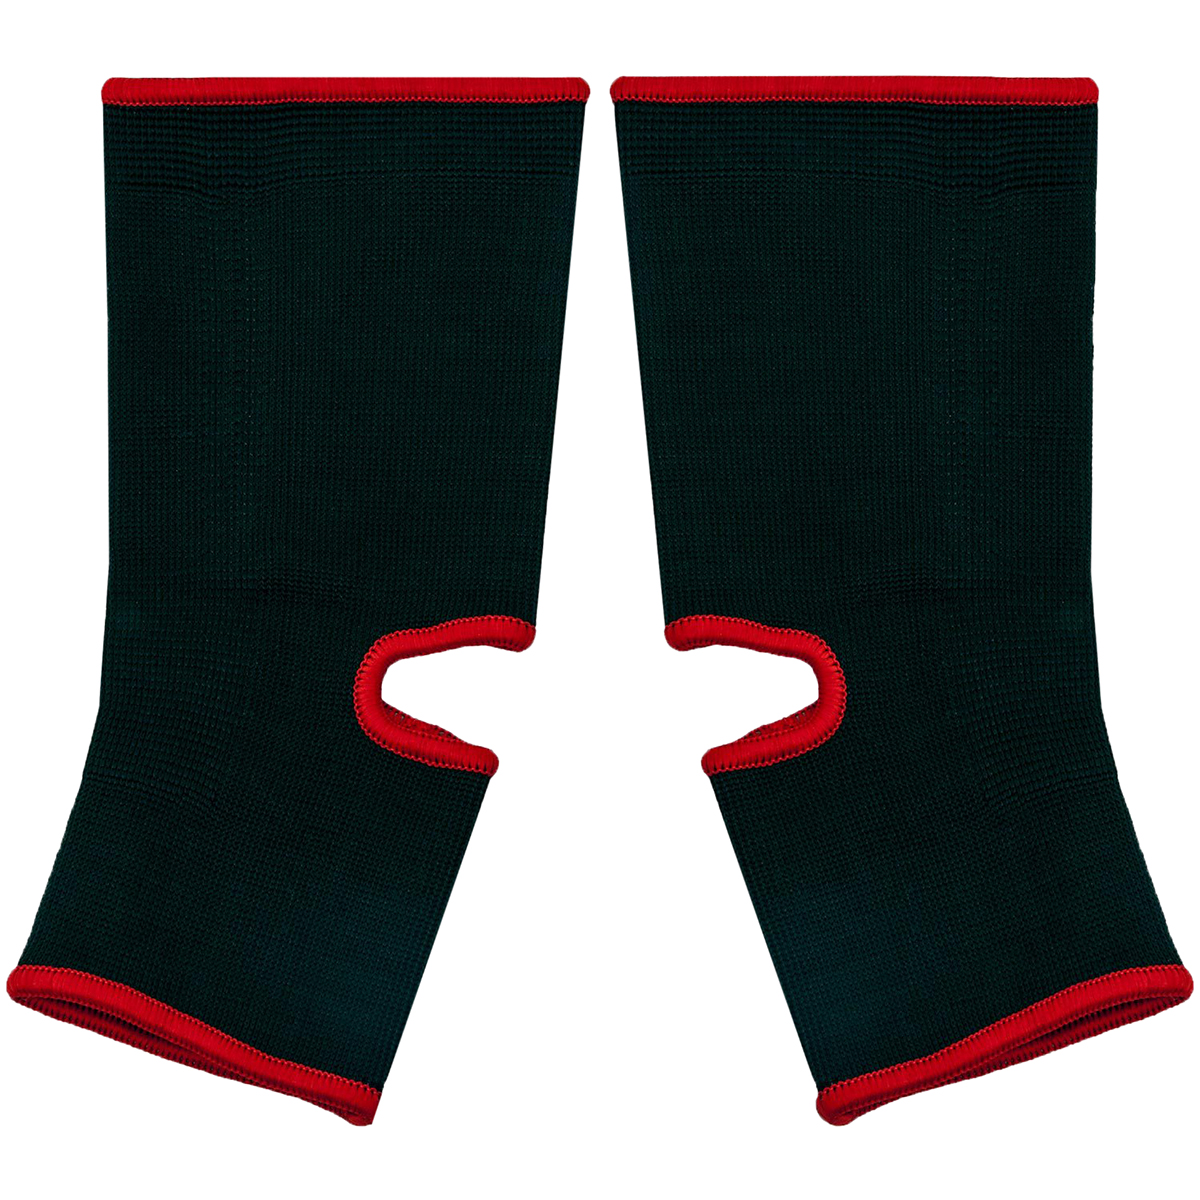 thumbnail 11 - Venum Kontact Slip-On MMA Pro Ankle Support Guards